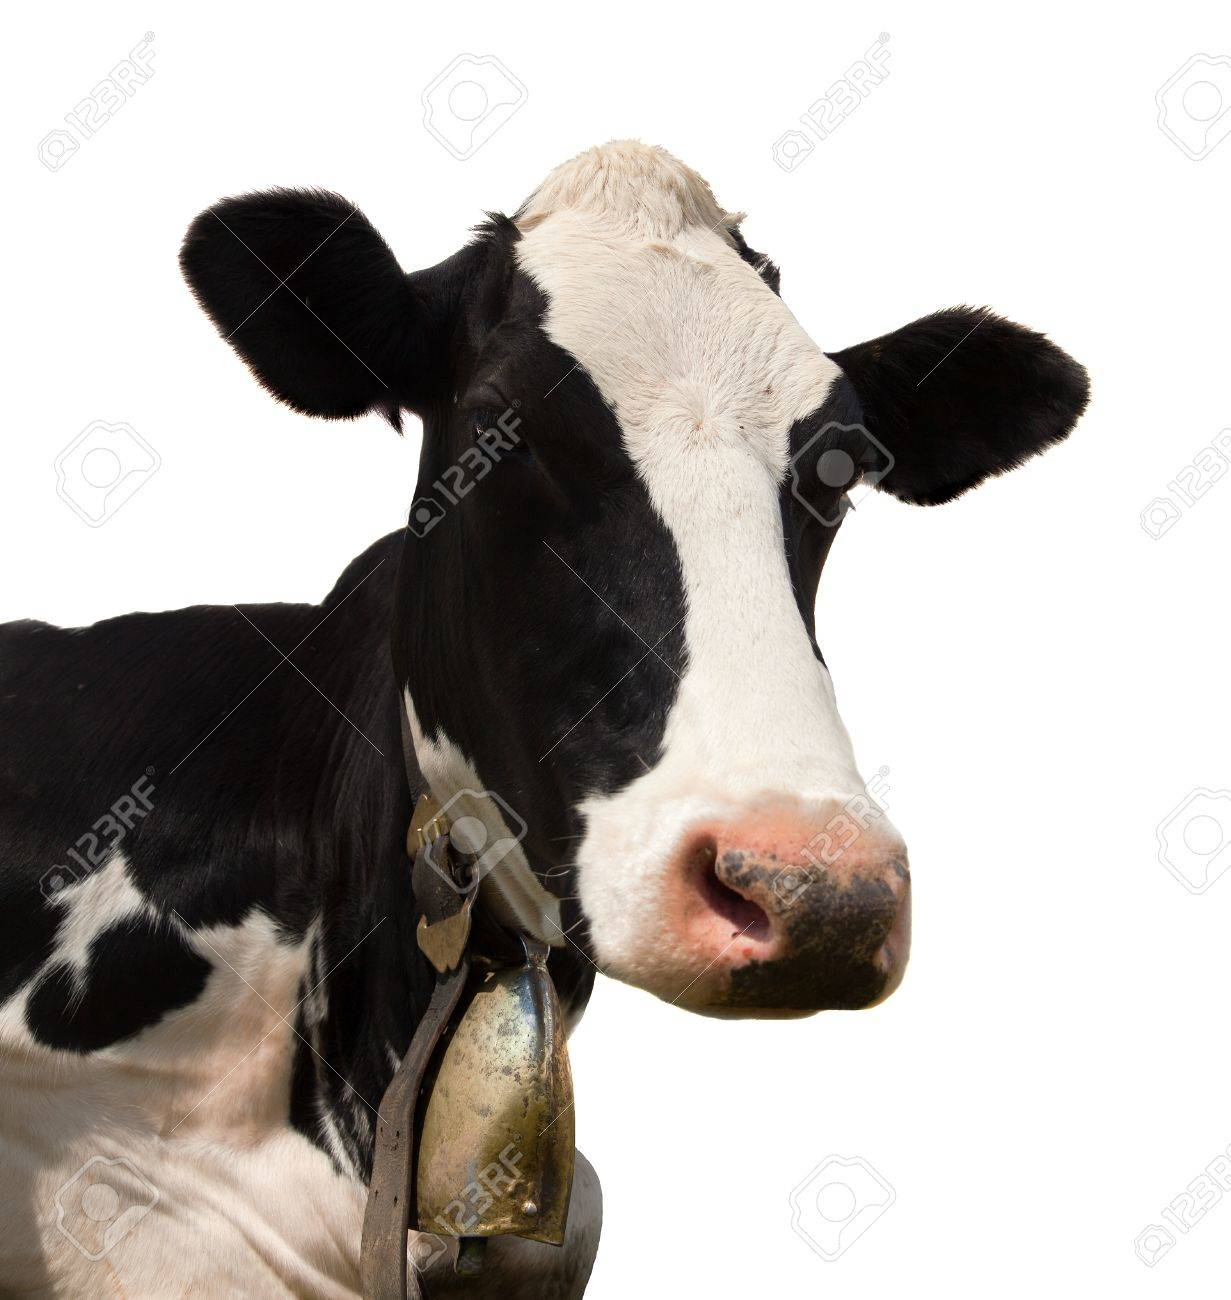 head of black and white cow bos primigenius taurus with cowbell